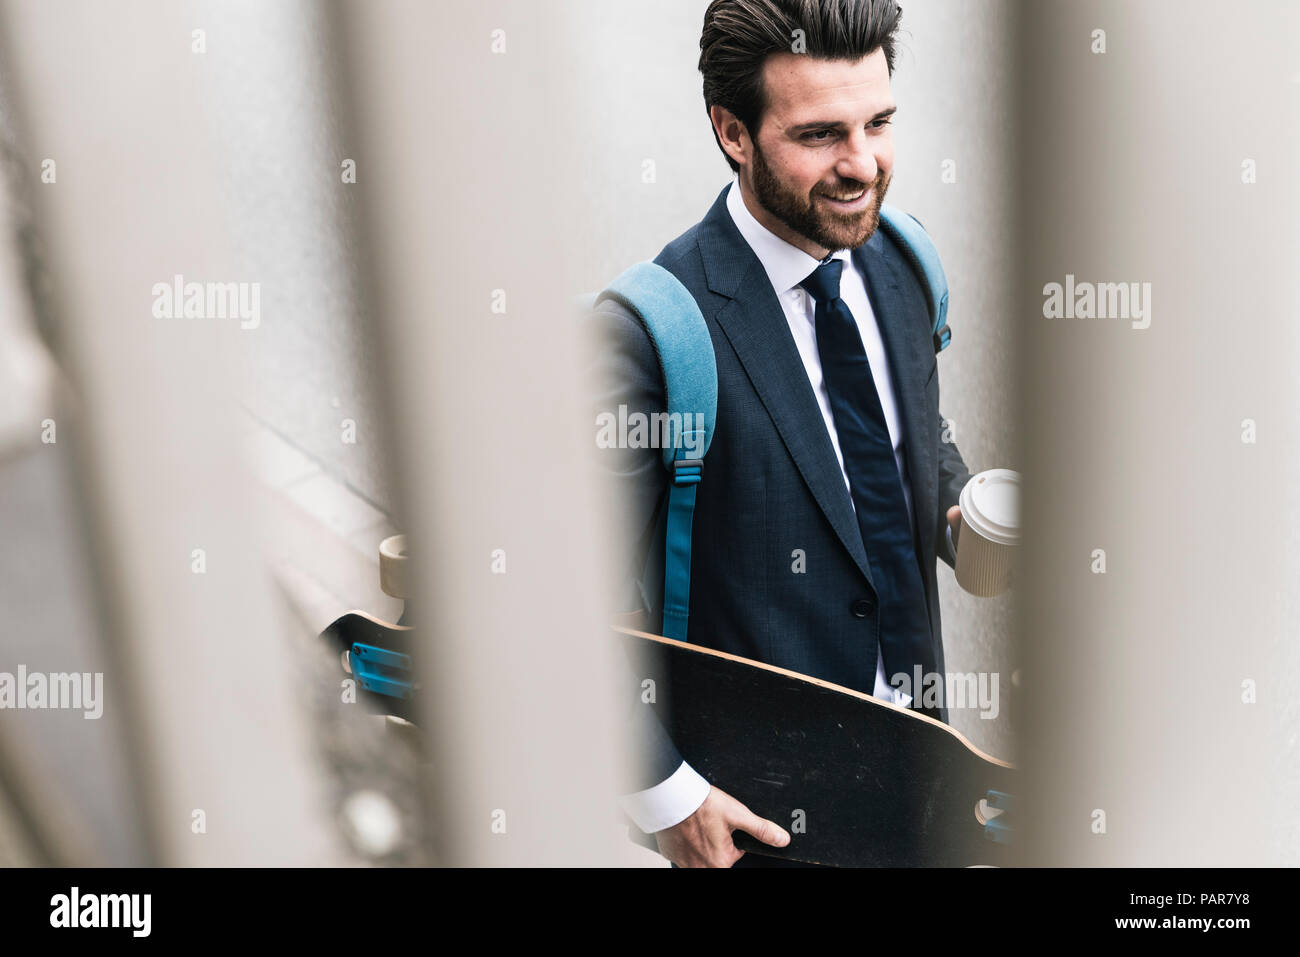 Smiling businessman with takeaway coffee and skateboard walking outdoors - Stock Image